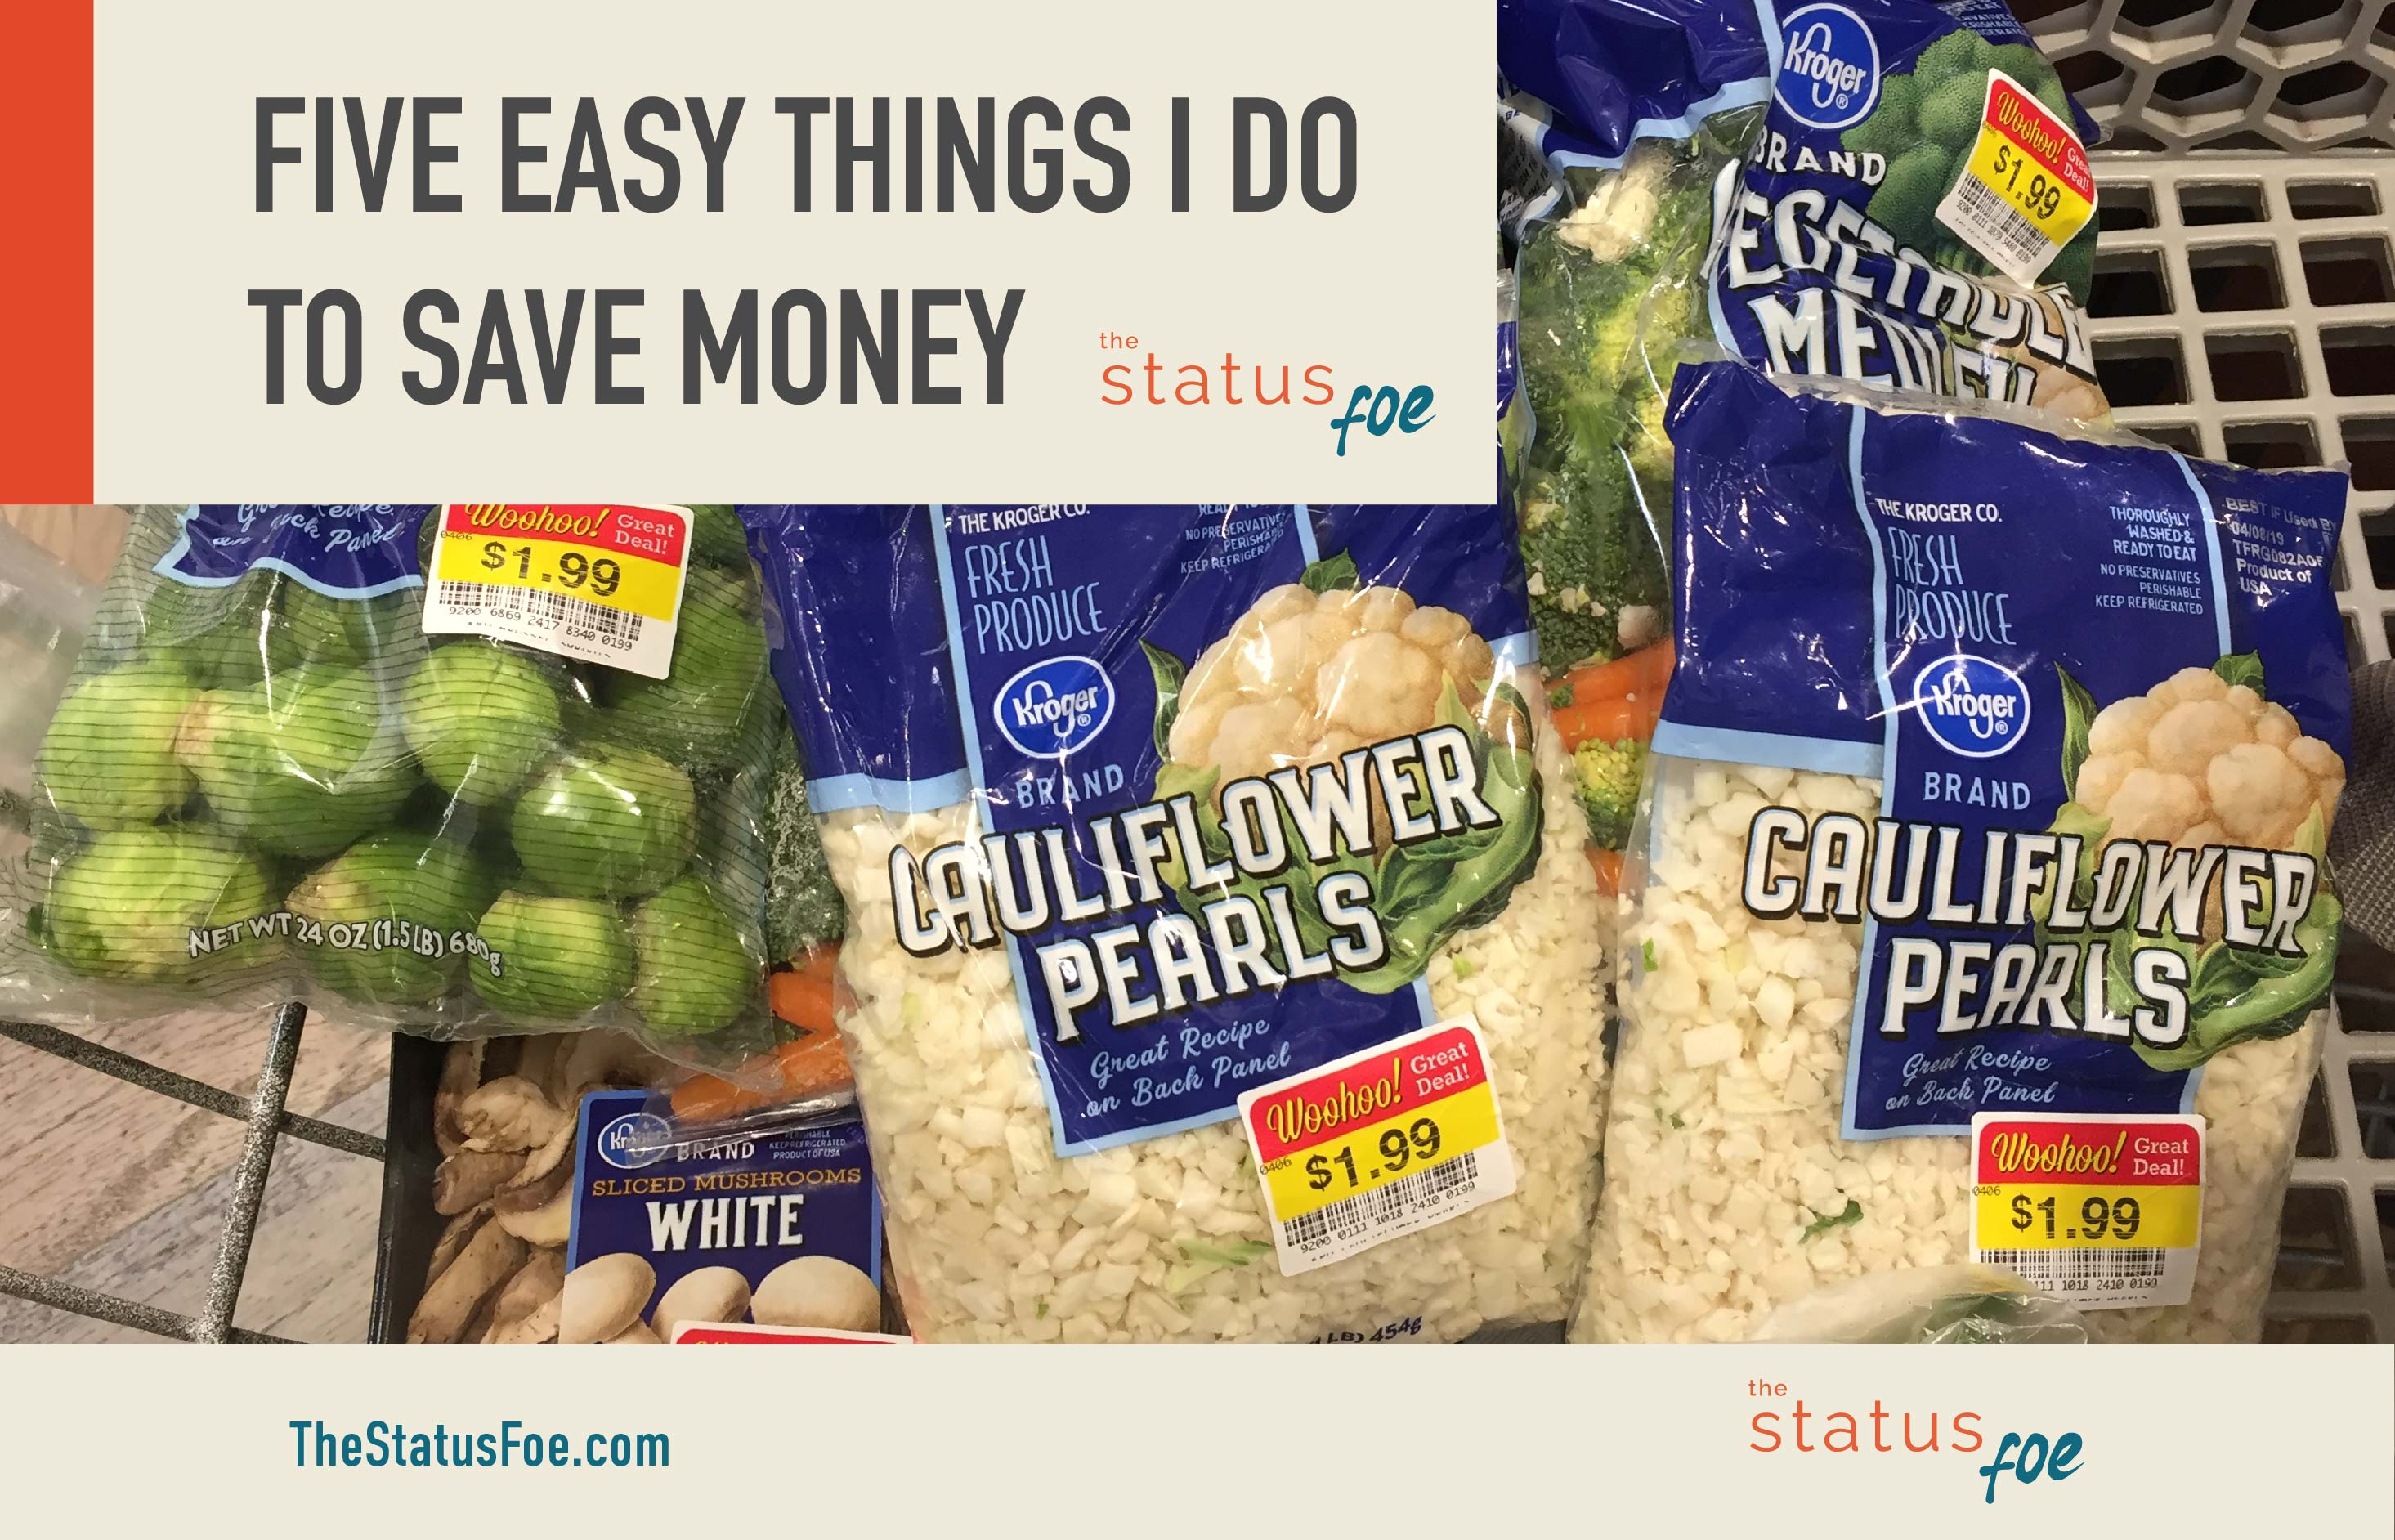 Five Easy Things I Do to Save Money